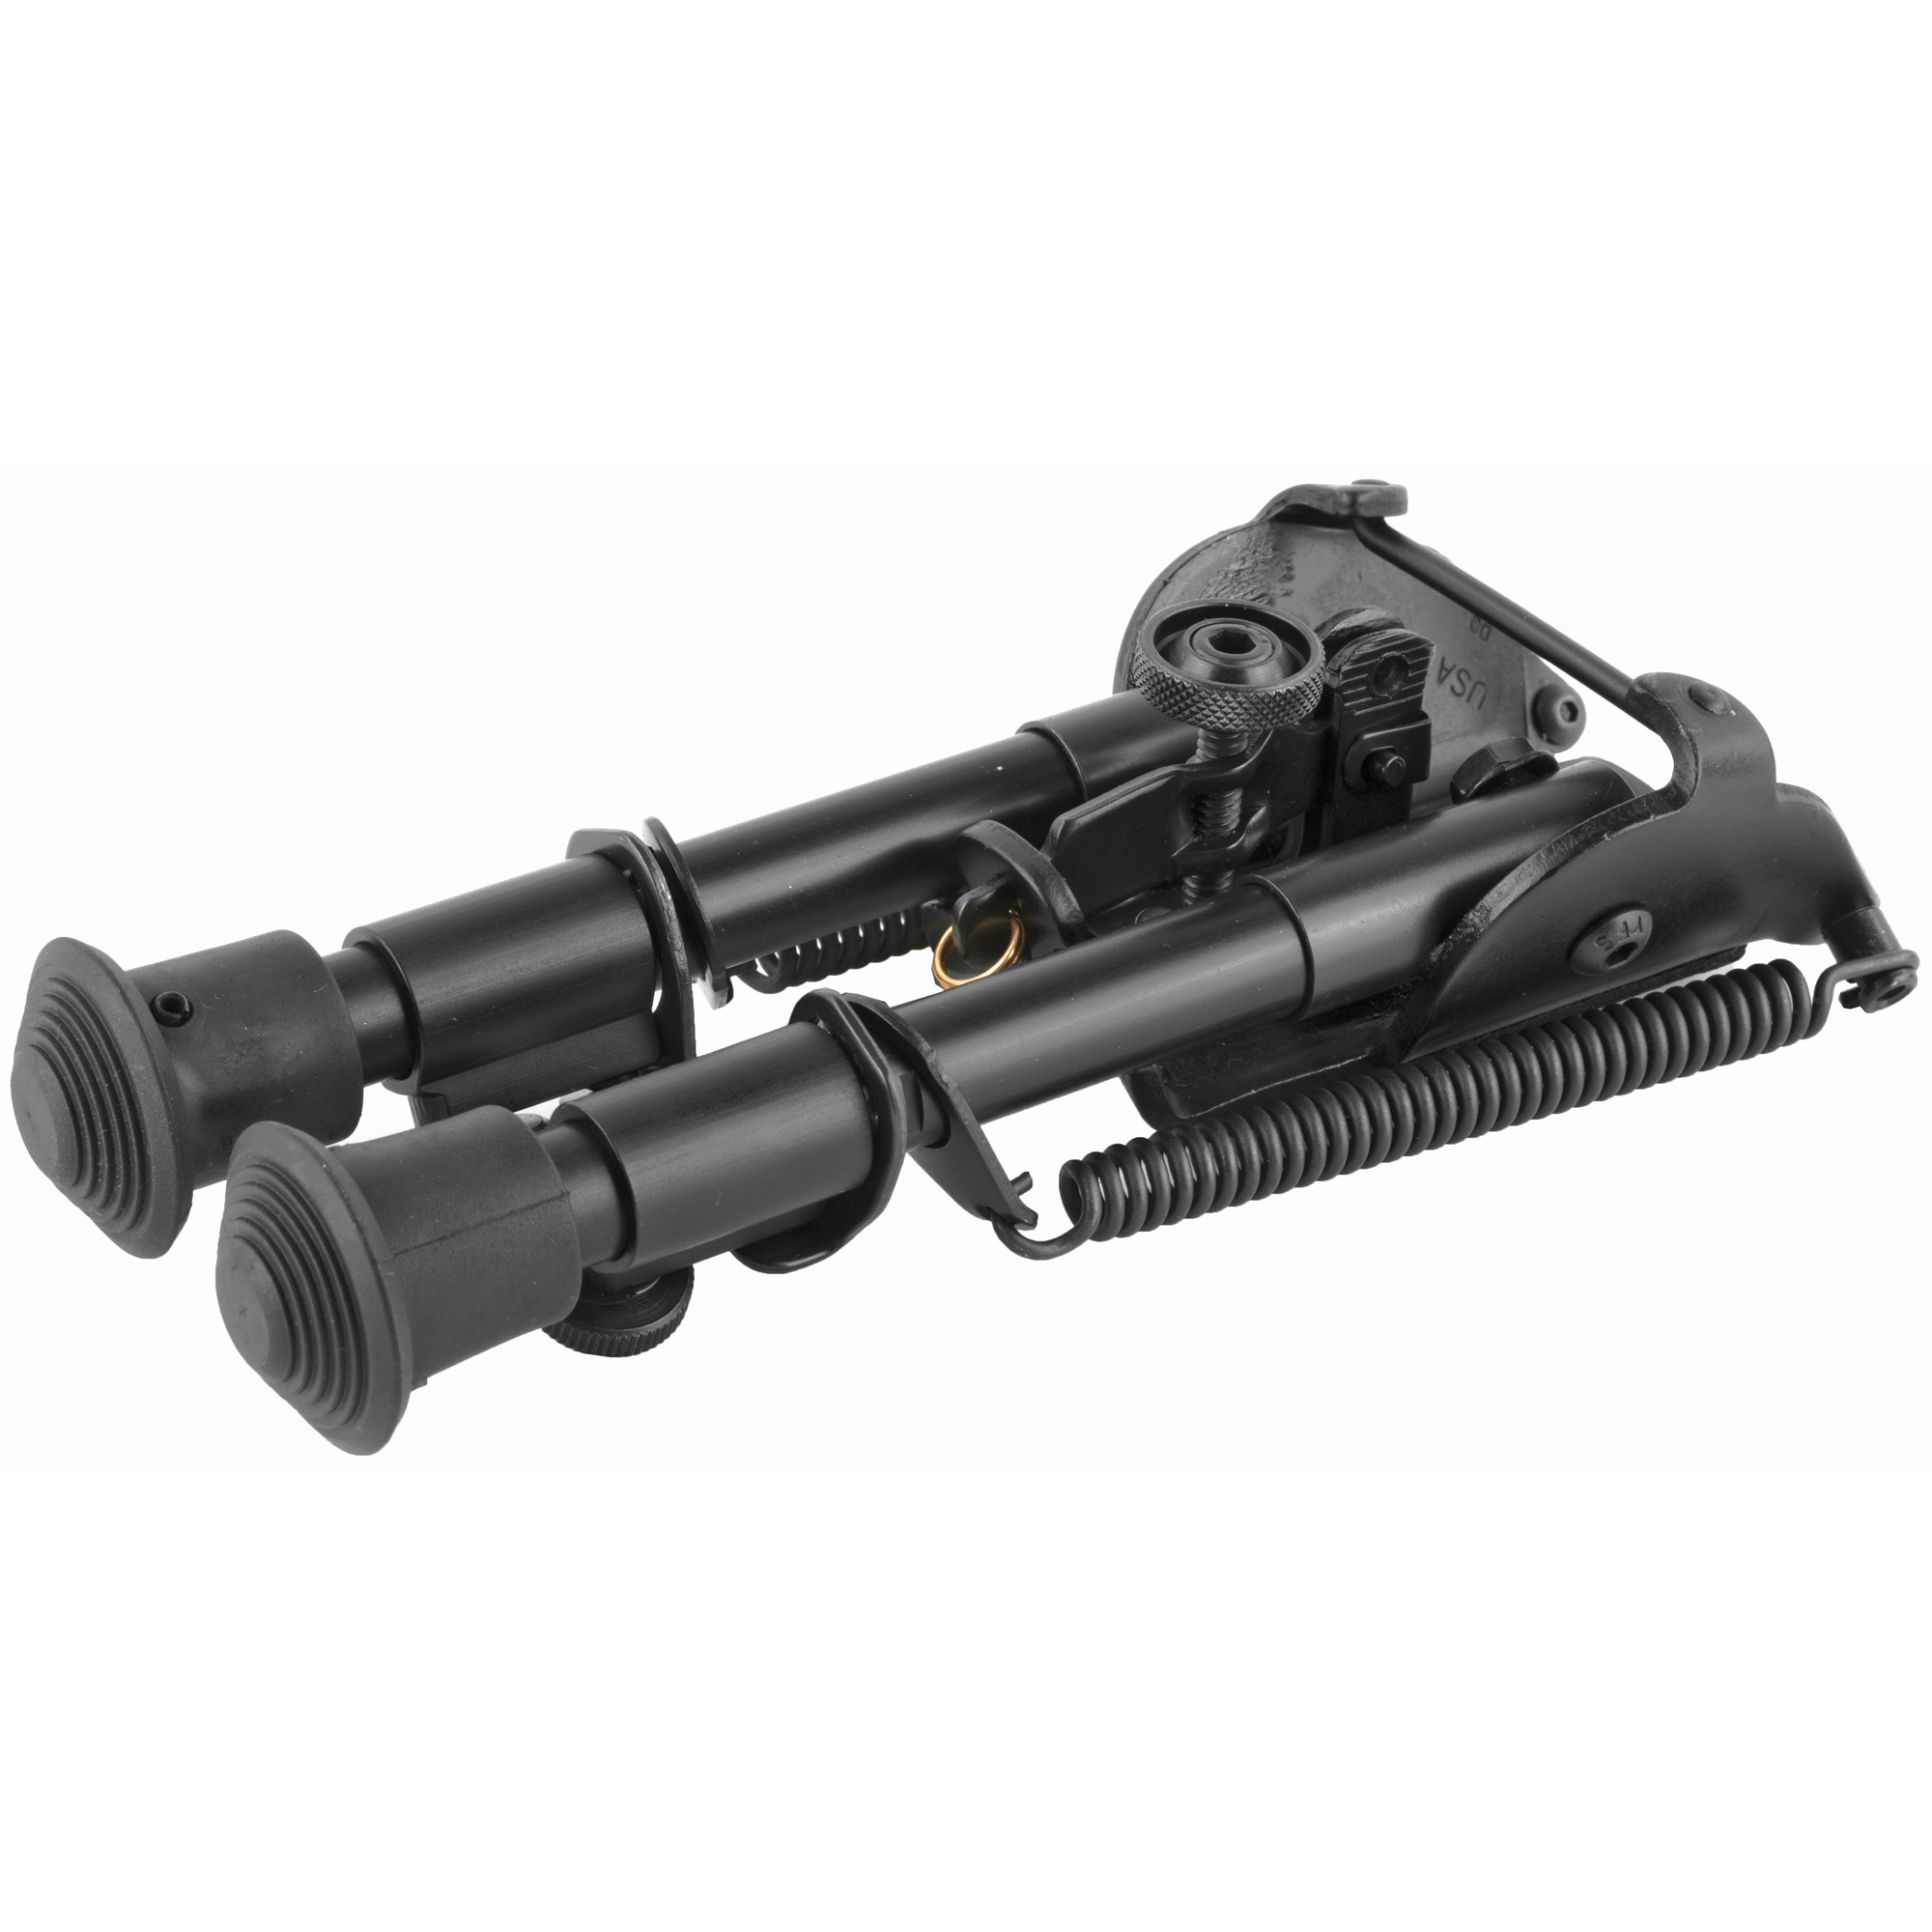 """Harris Engineering's 6""""-9"""" Ultra-Light Bench Rest Bipod attaches to a sling swivel stud. It is manufactured using high quality parts to ensure excellent function and sustainable use. The bipod features an anodized matte black finish."""